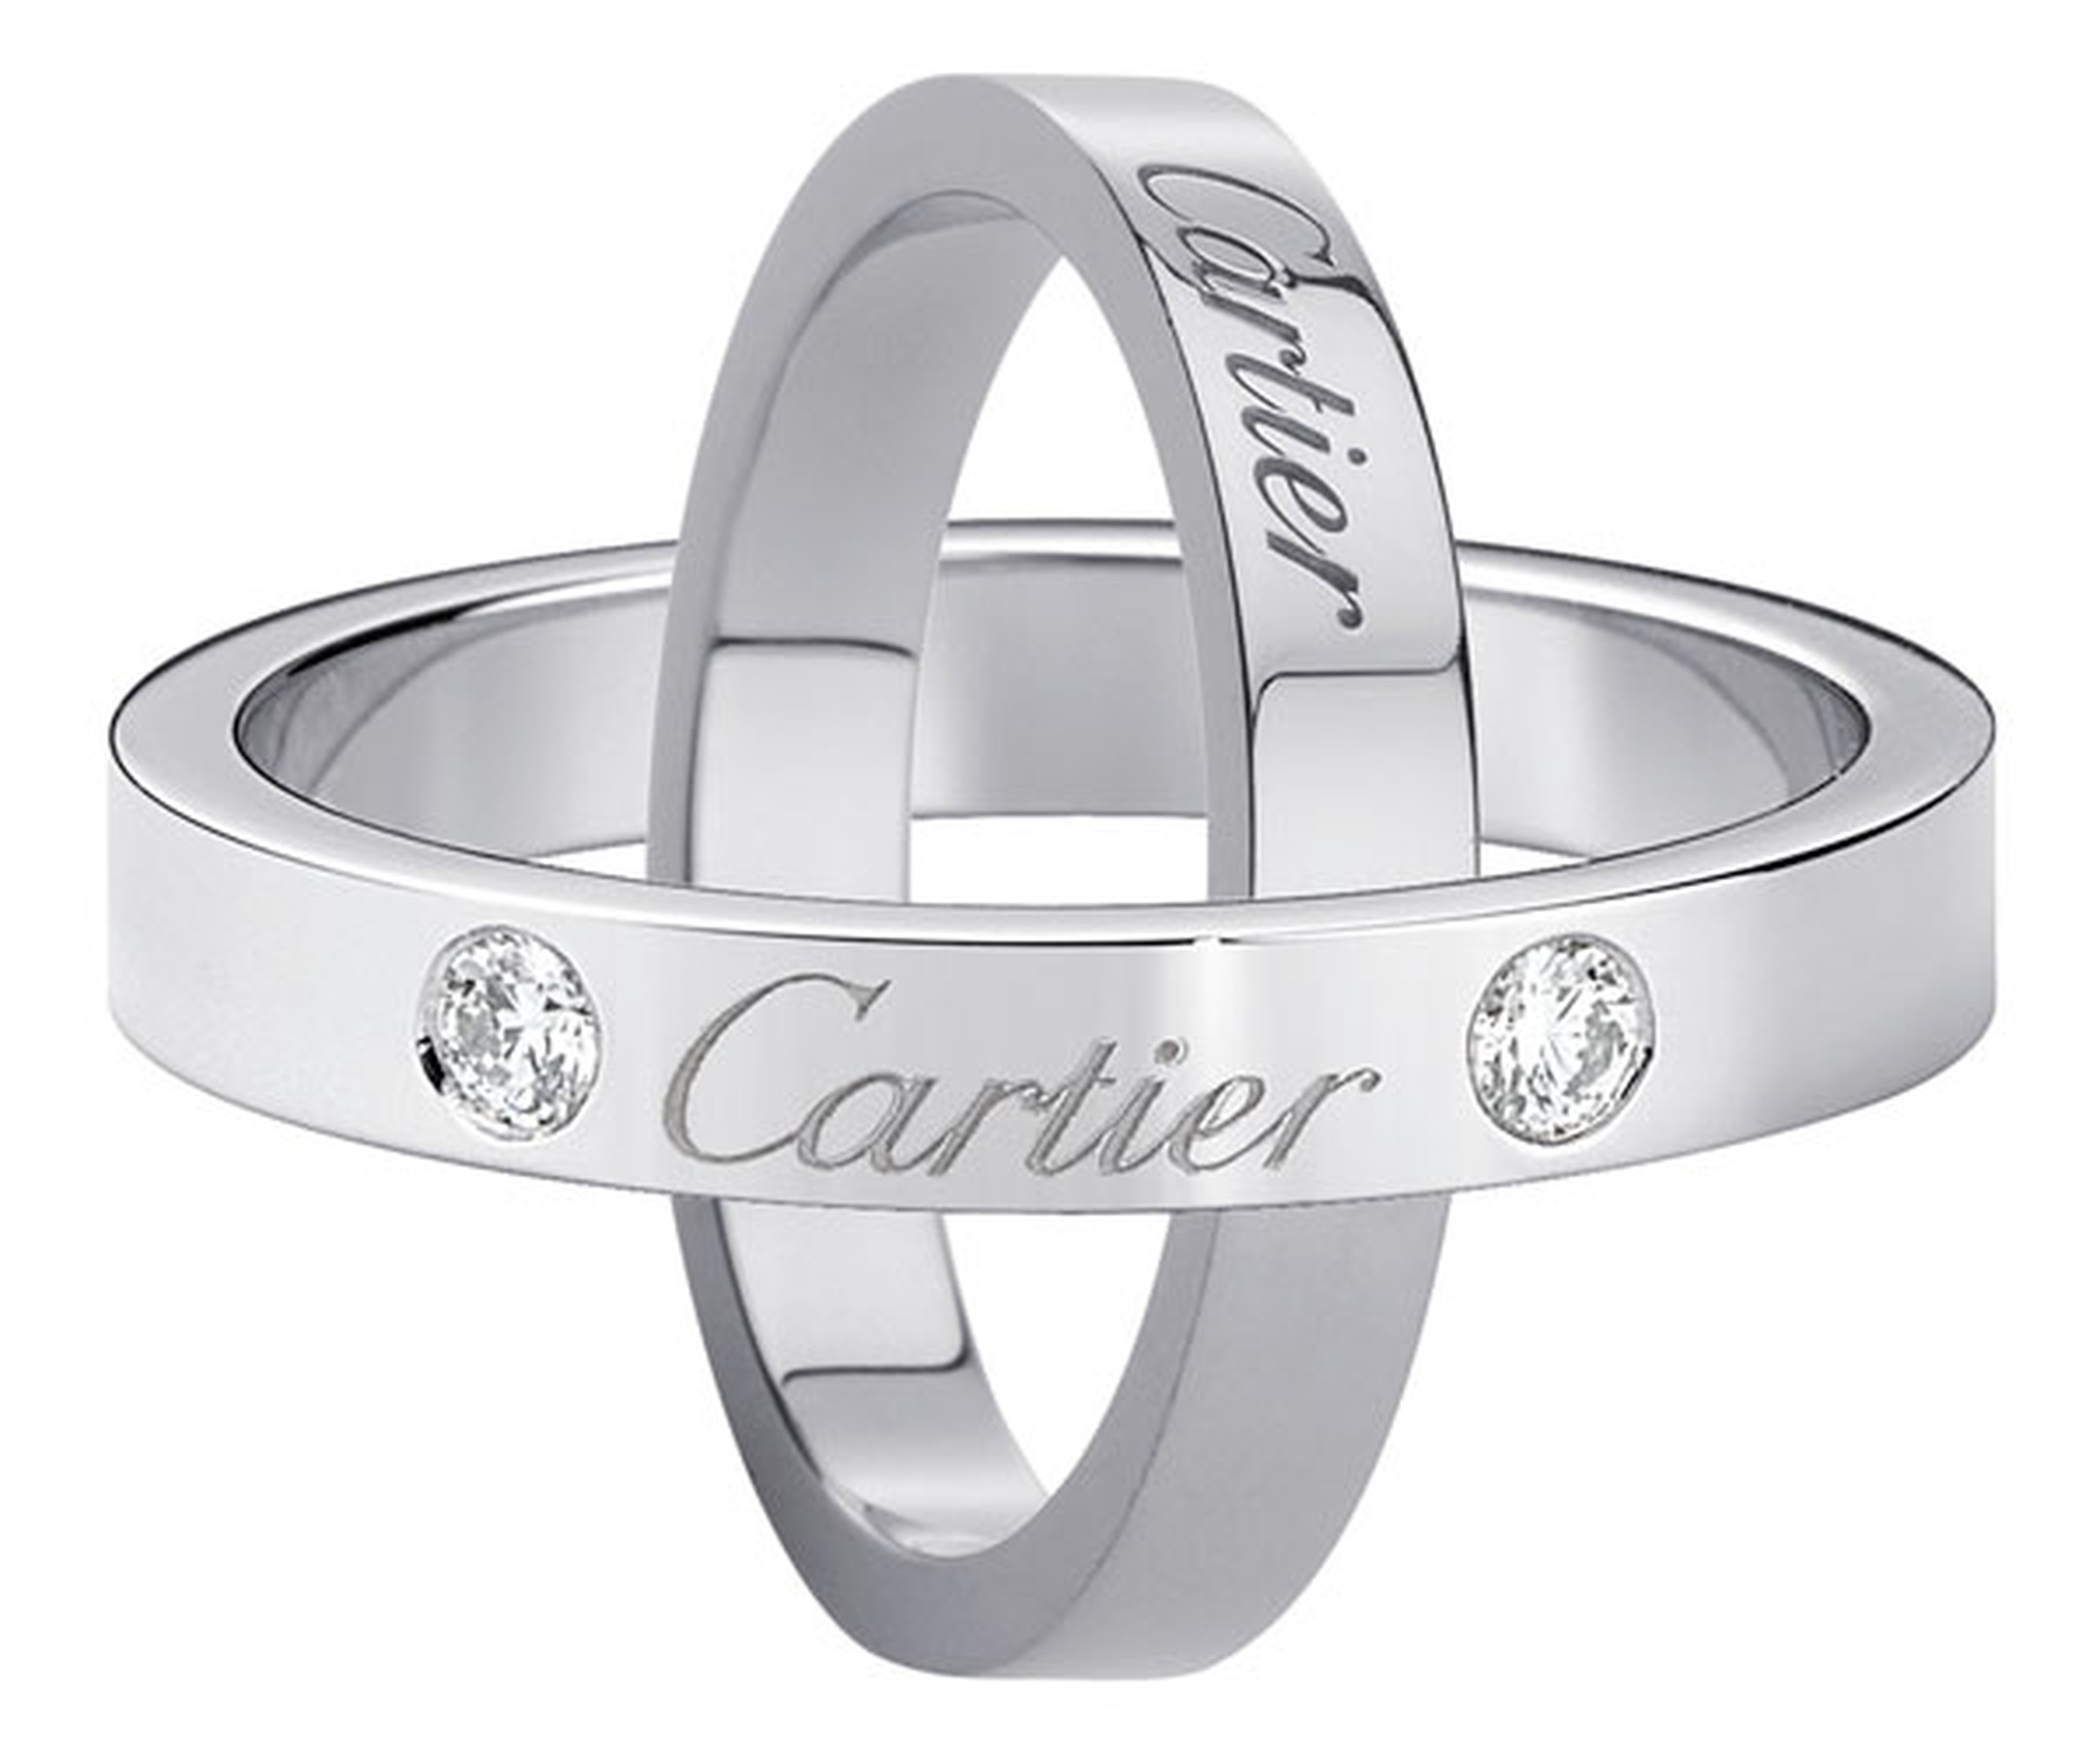 Cartier. Wedding rings engraved with Cartier  - Wedding ring engraved with Cartier, platinum, 2 diamonds; Wedding ring engraved with Cartier, platinum